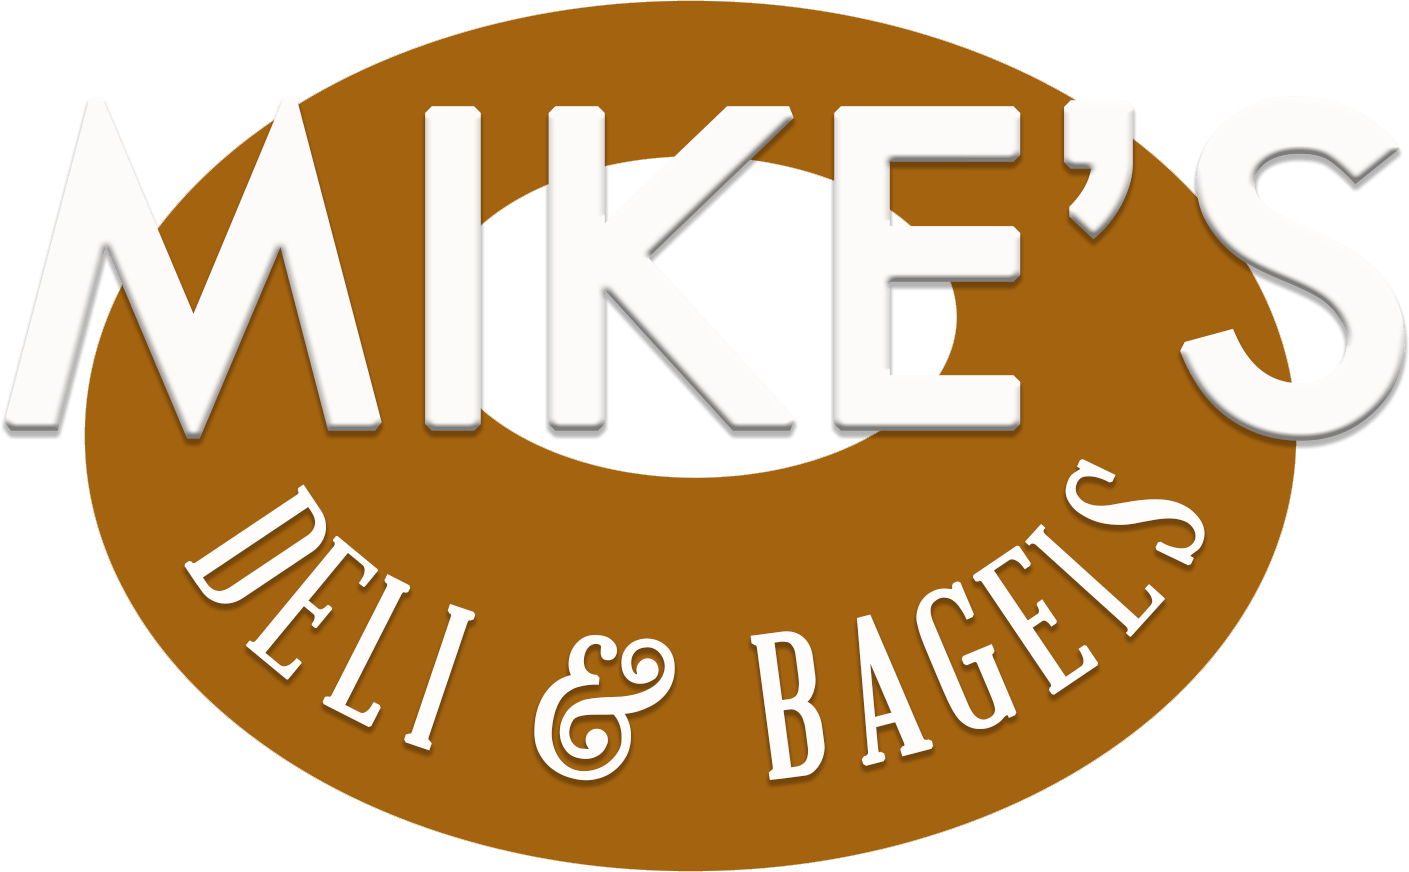 Mike's Deli and Bagels